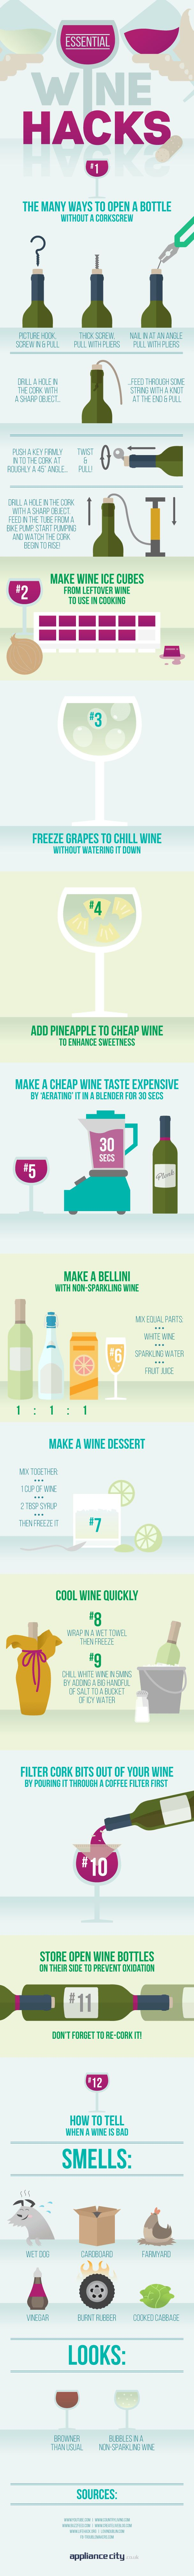 Step up your wine knowledge with this infographic.